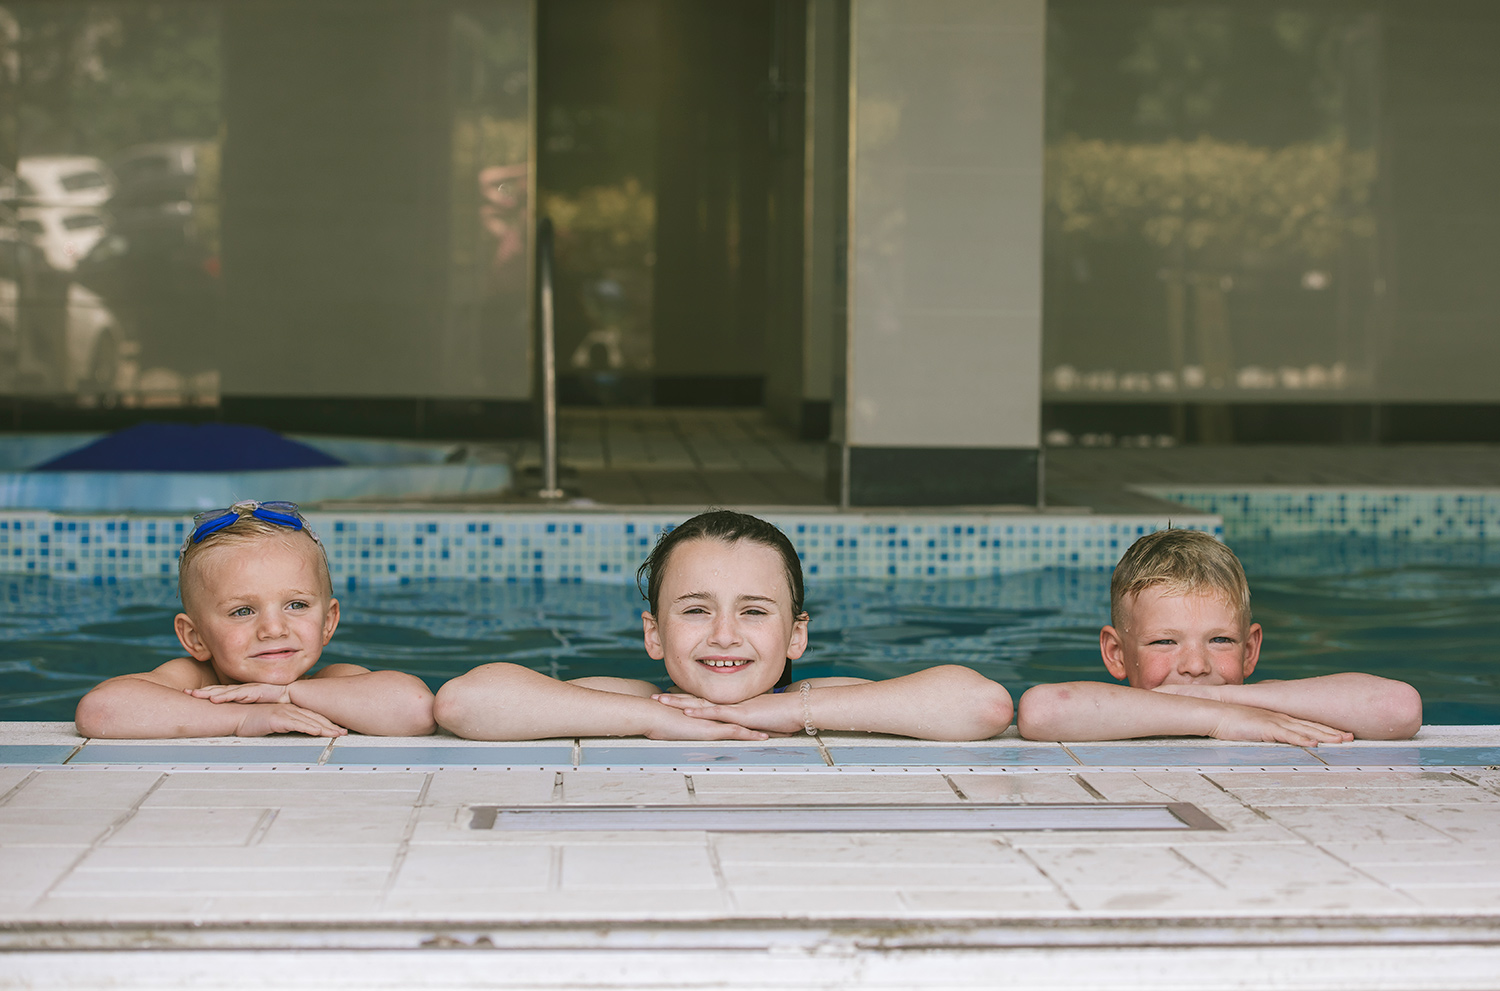 creative-commercial-lifestyle-photography-kids-fun-pool.jpg